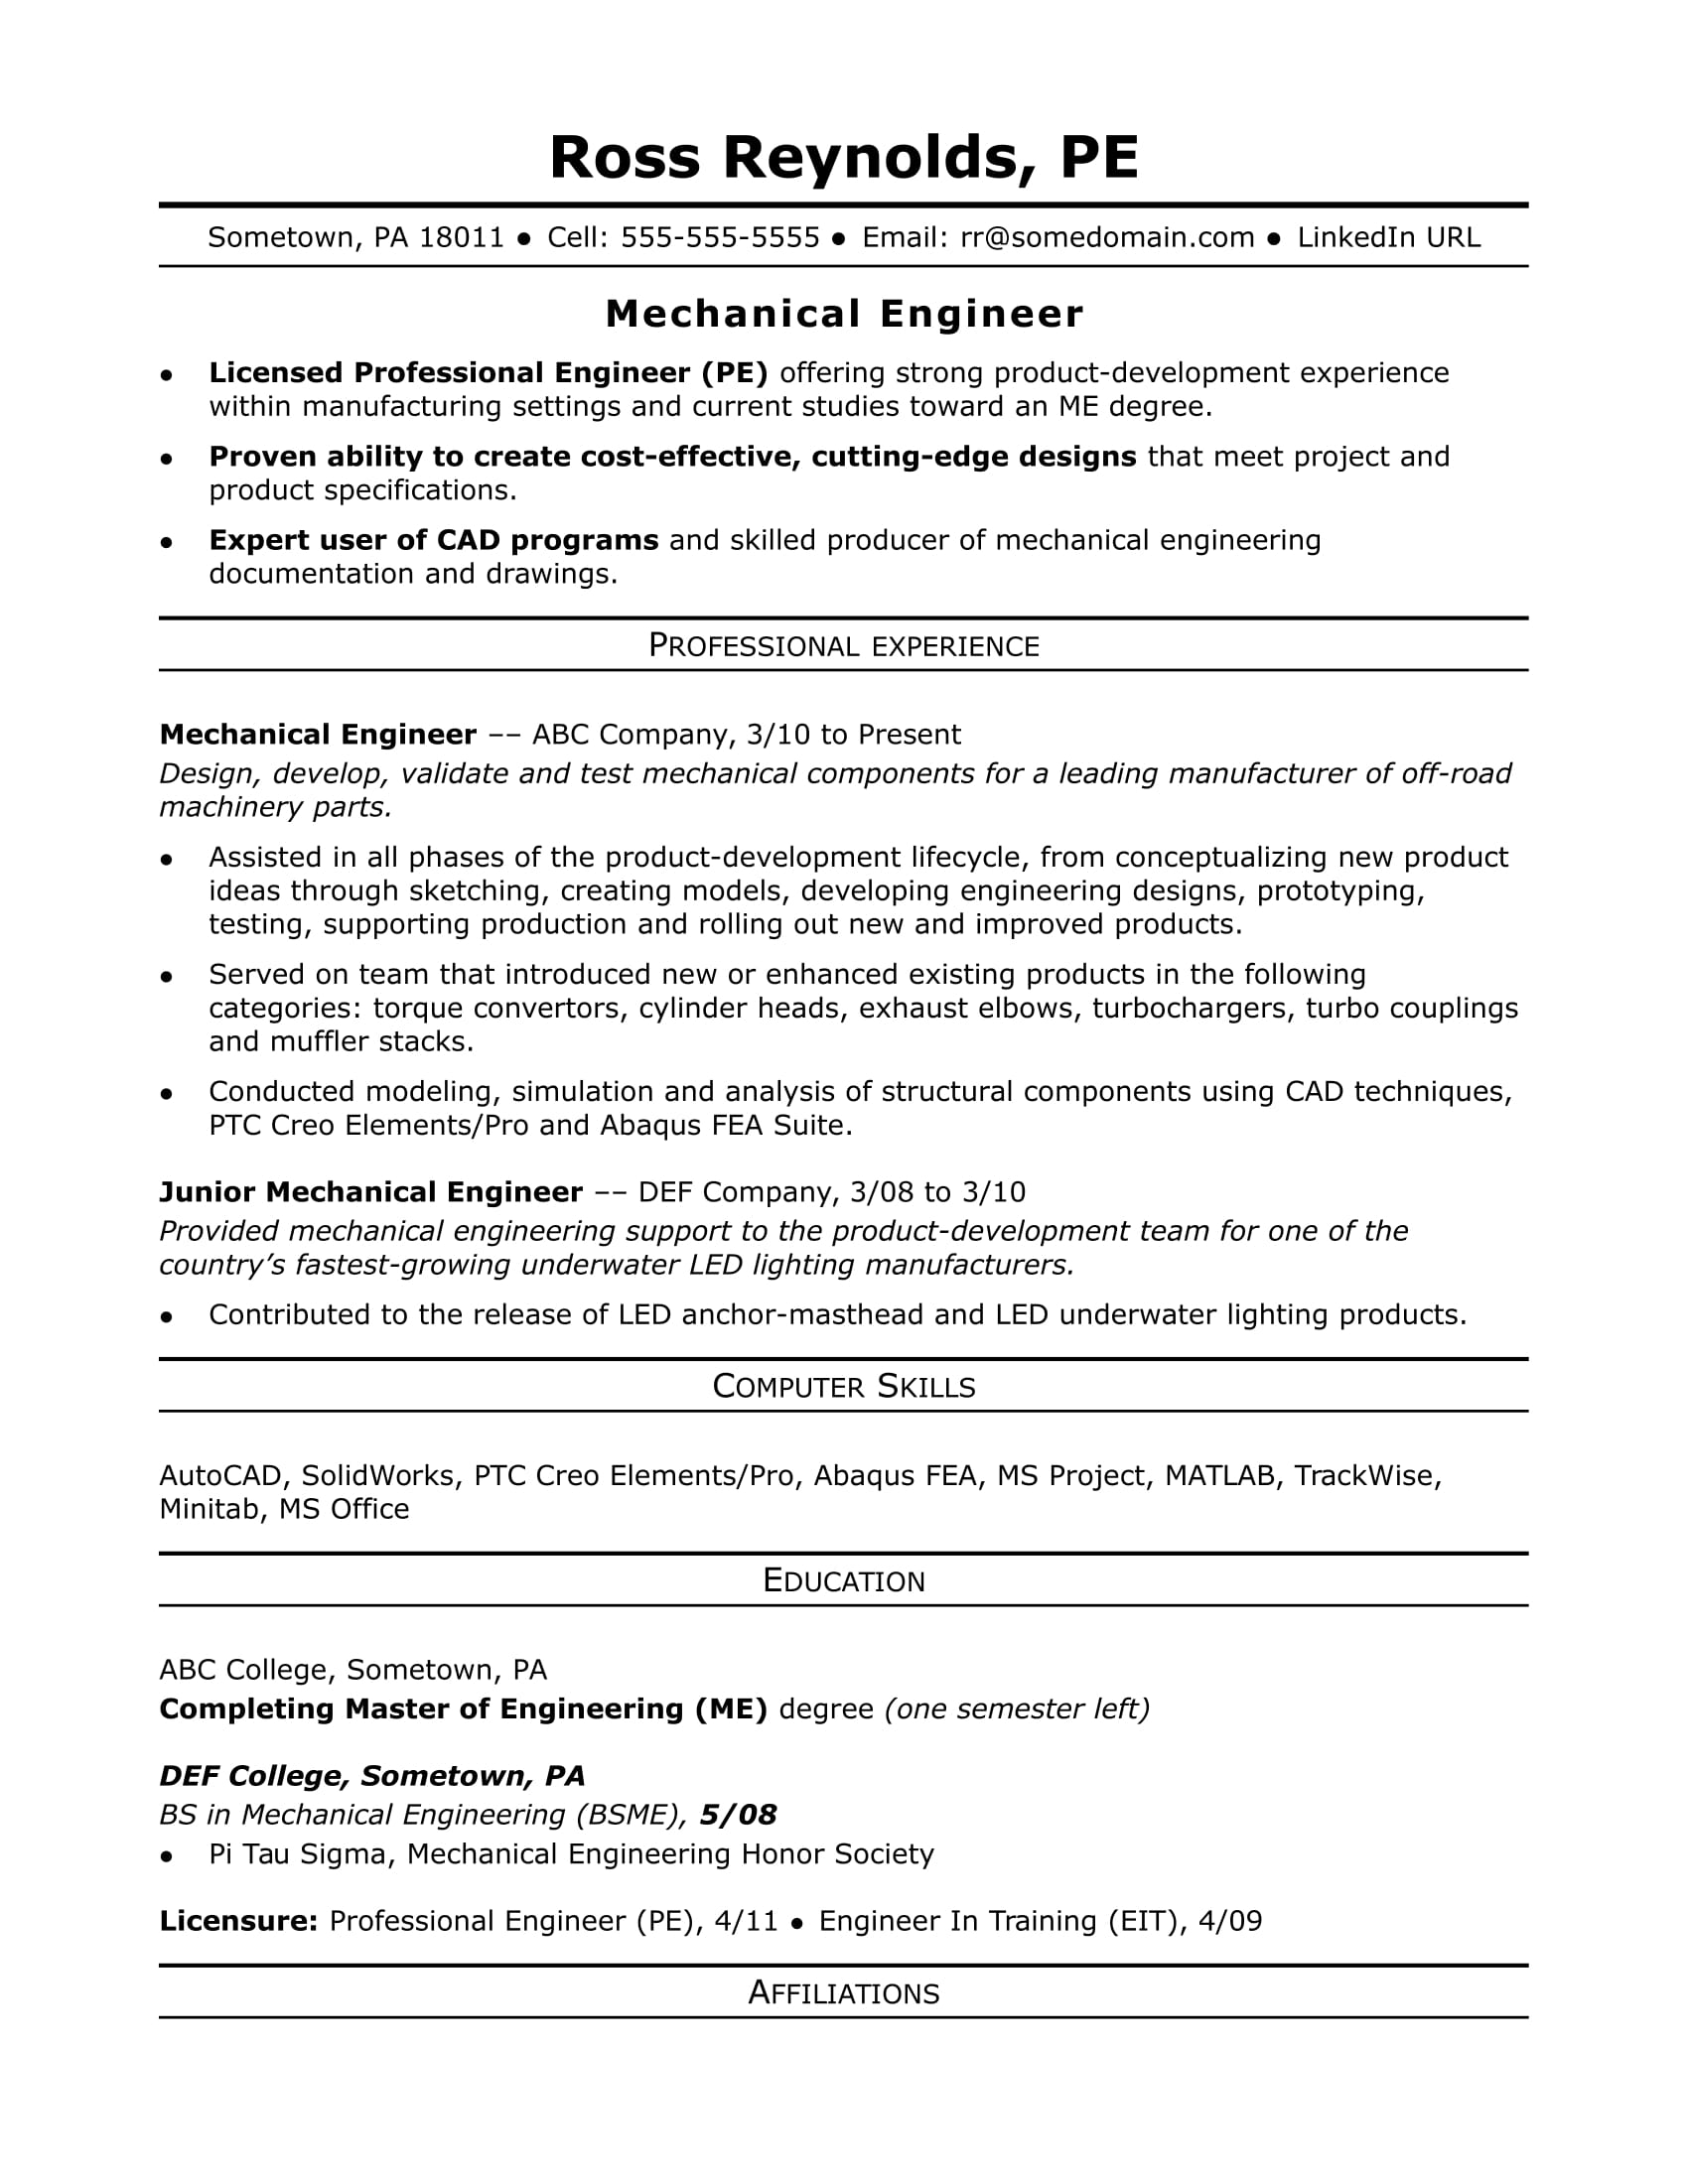 Sample resume for a midlevel mechanical engineer for Sample resume for diploma in mechanical engineering